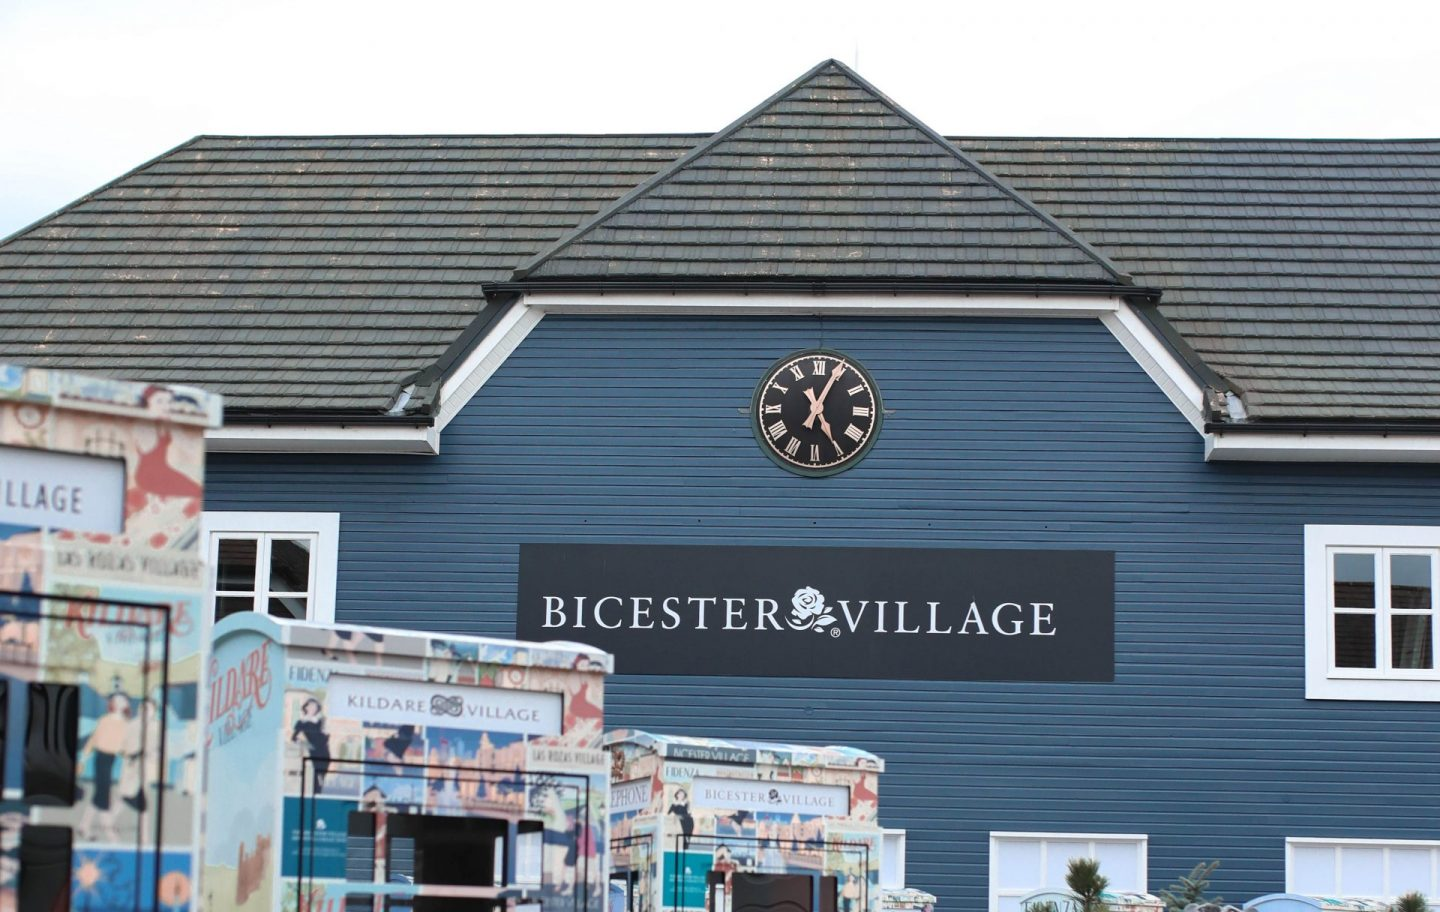 Bicester Village Private Sale Twenty First Century Gent